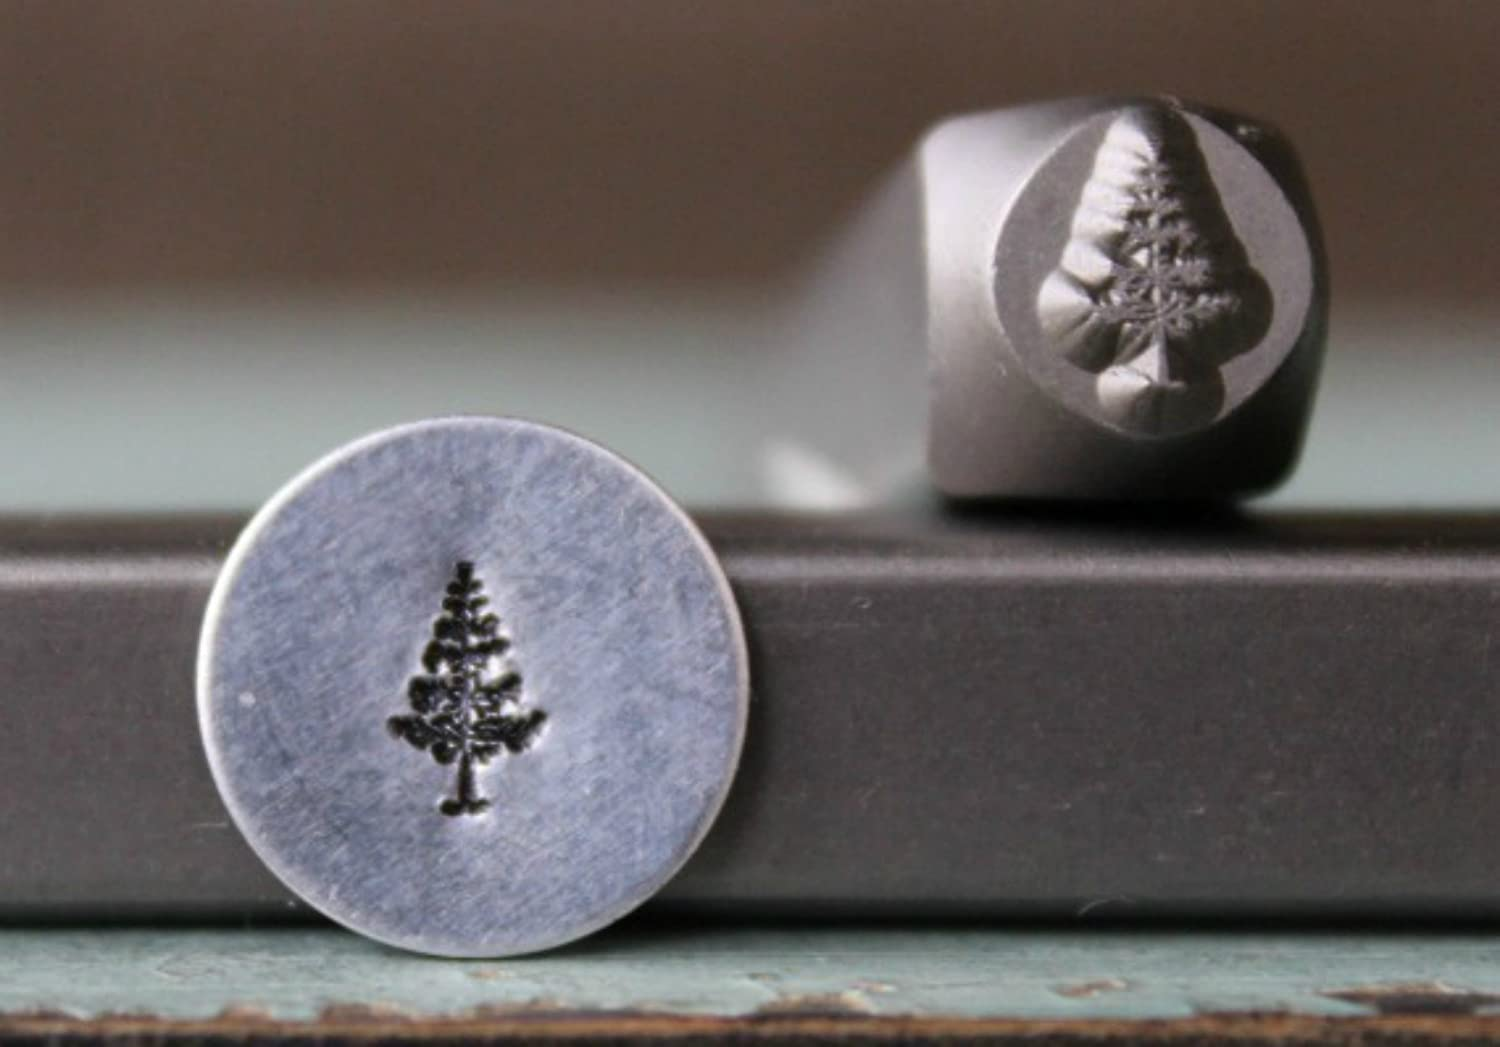 Brand New 6mm Pine Tree Metal Punch Design Stamp CH-197 Supply Guy